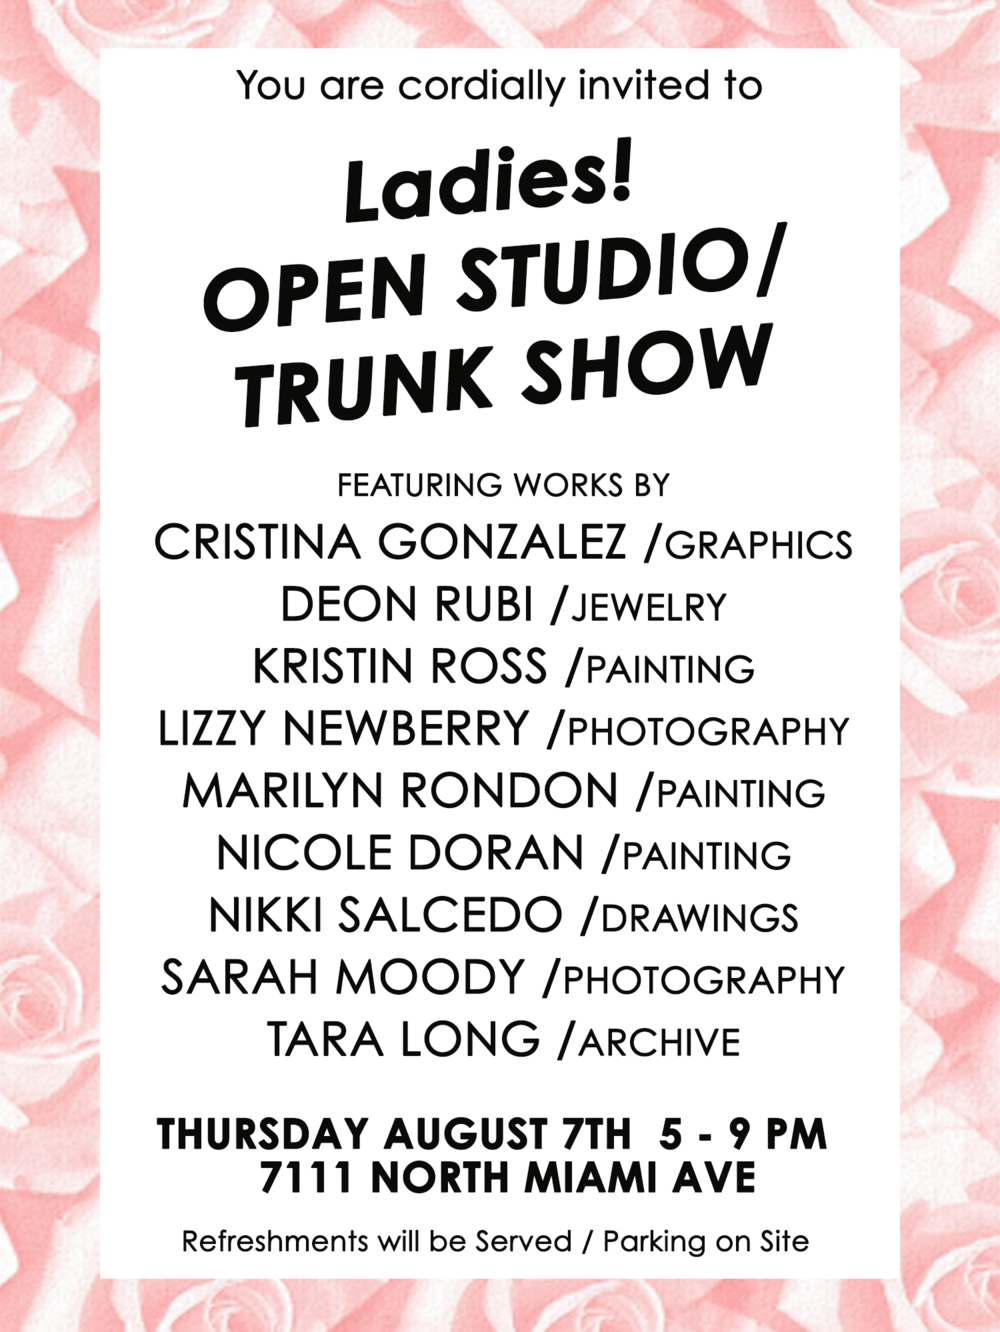 LadiesOpenStudios_Invite.png